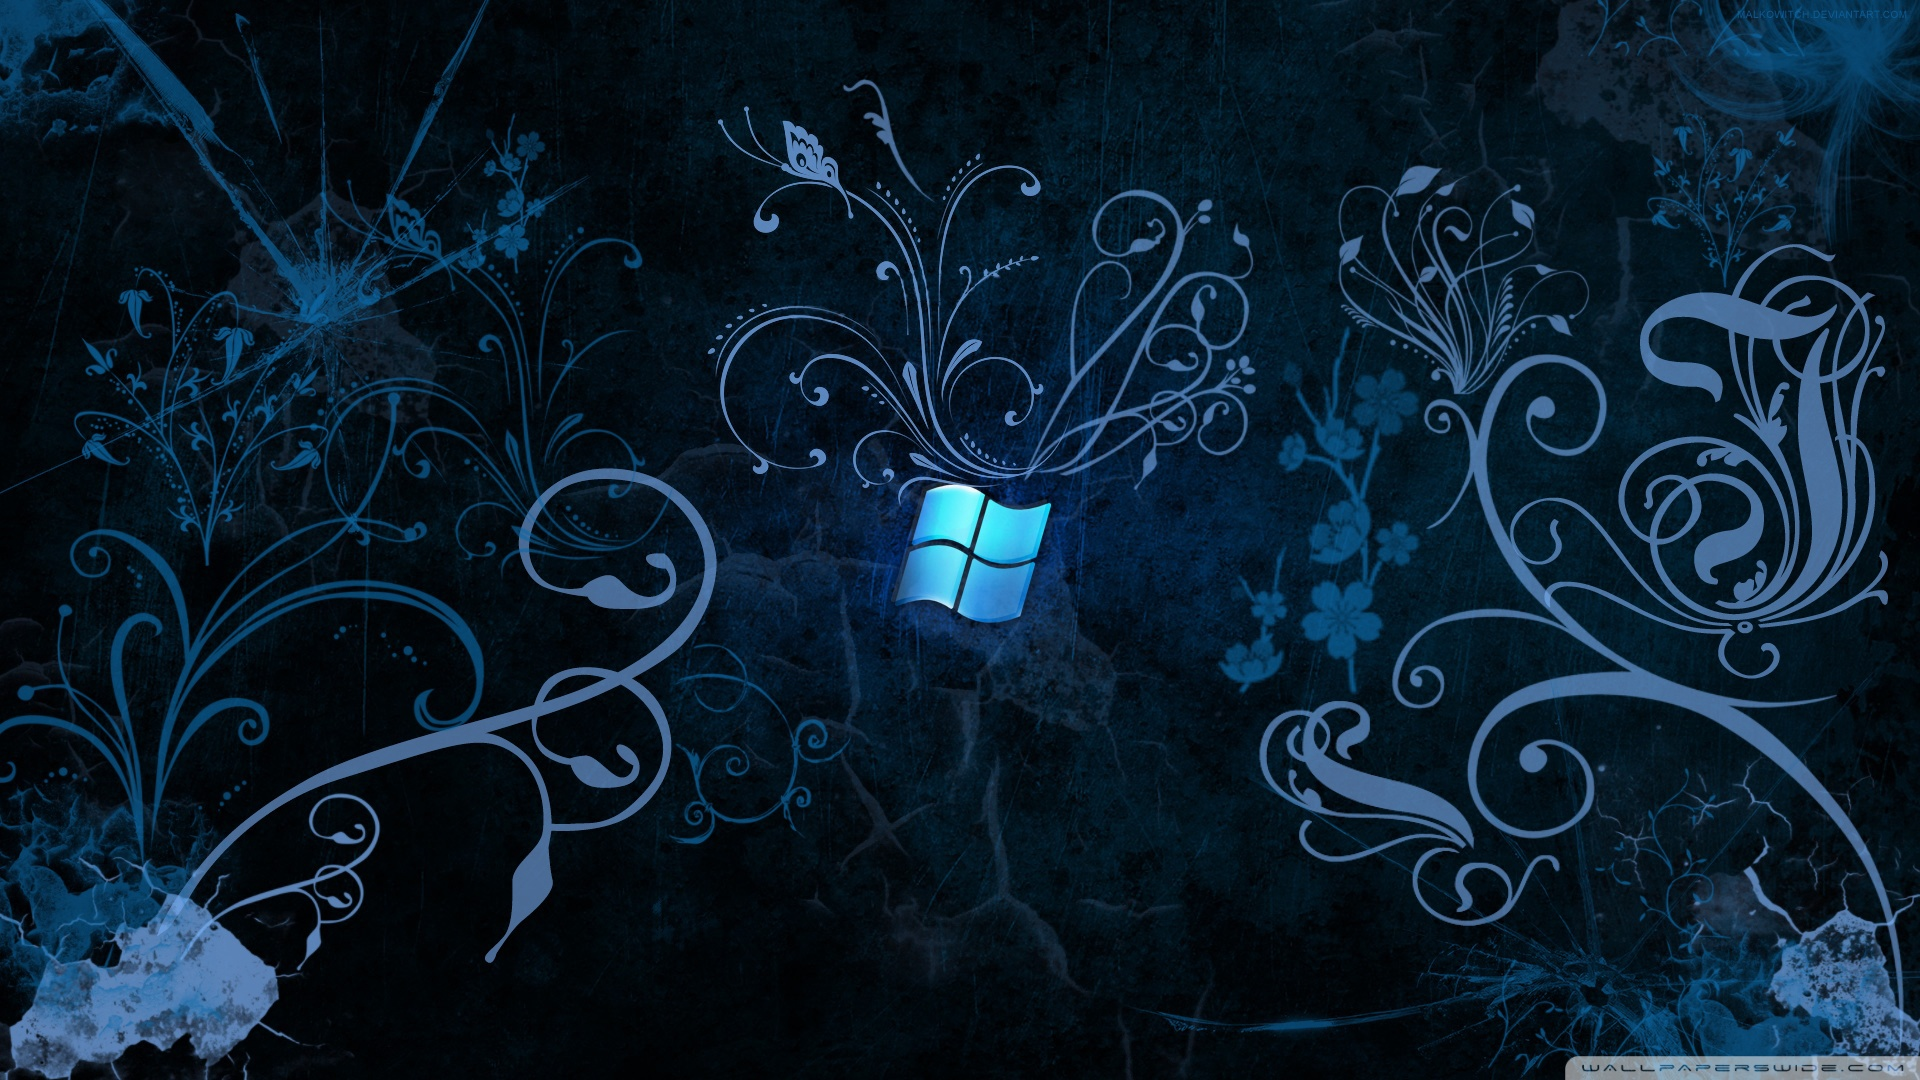 Free Download 50 Hp Live Wallpaper Windows 81 On